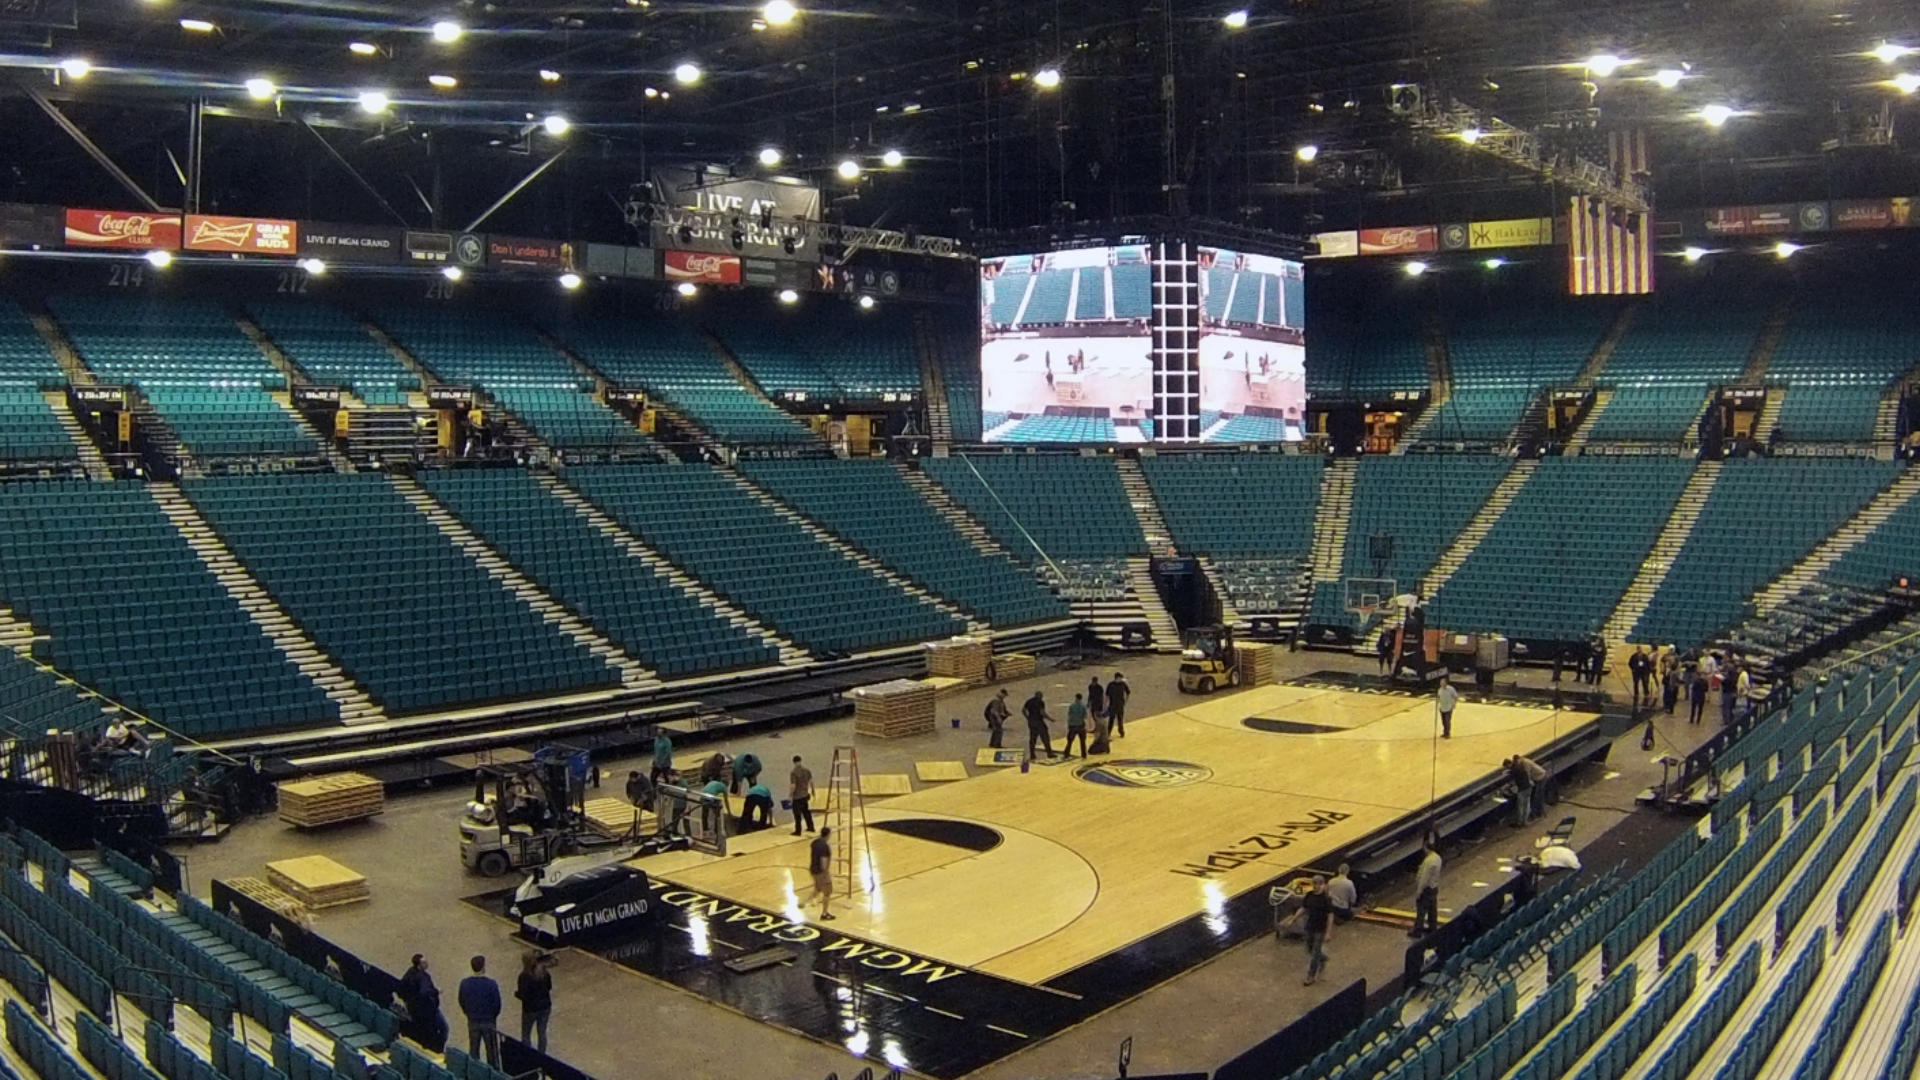 2014 Pac12 Mens Basketball Tournament MGM Grand Garden Arena set